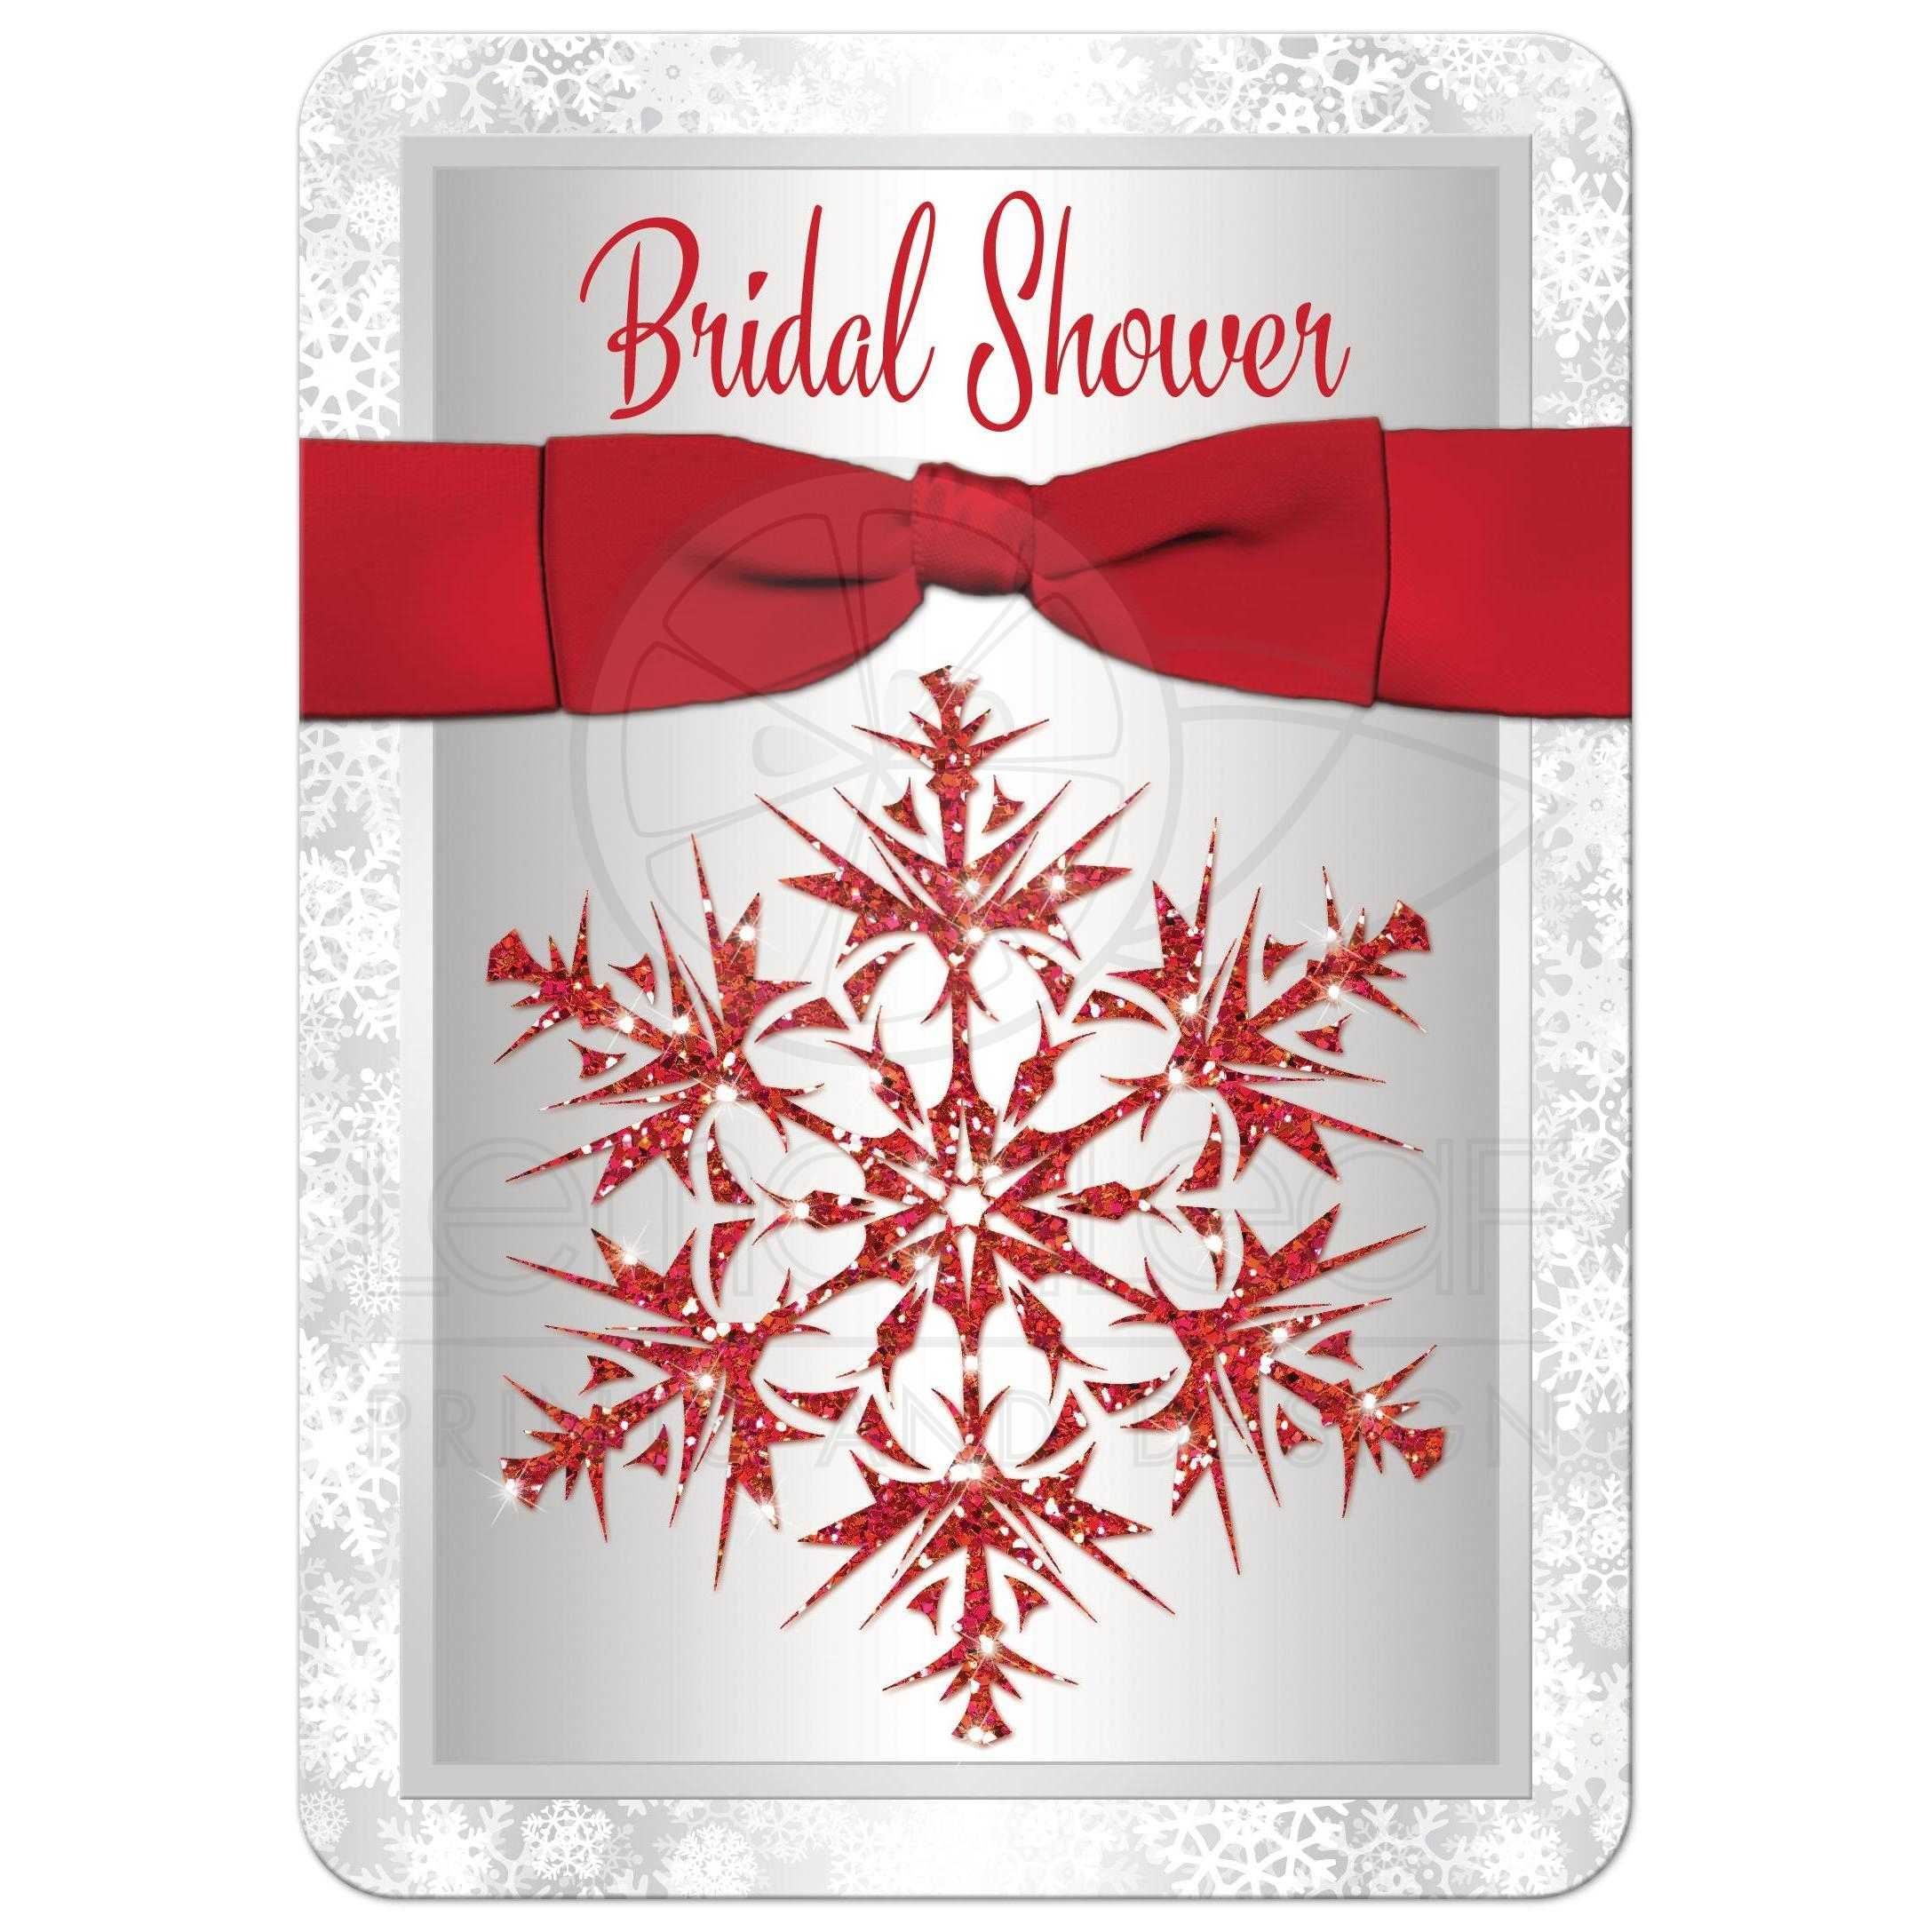 Christmas wedding dress 101 -  Great Silver And White Snowflakes Winter Wedding Bridal Or Couples Shower Invitation With A Red